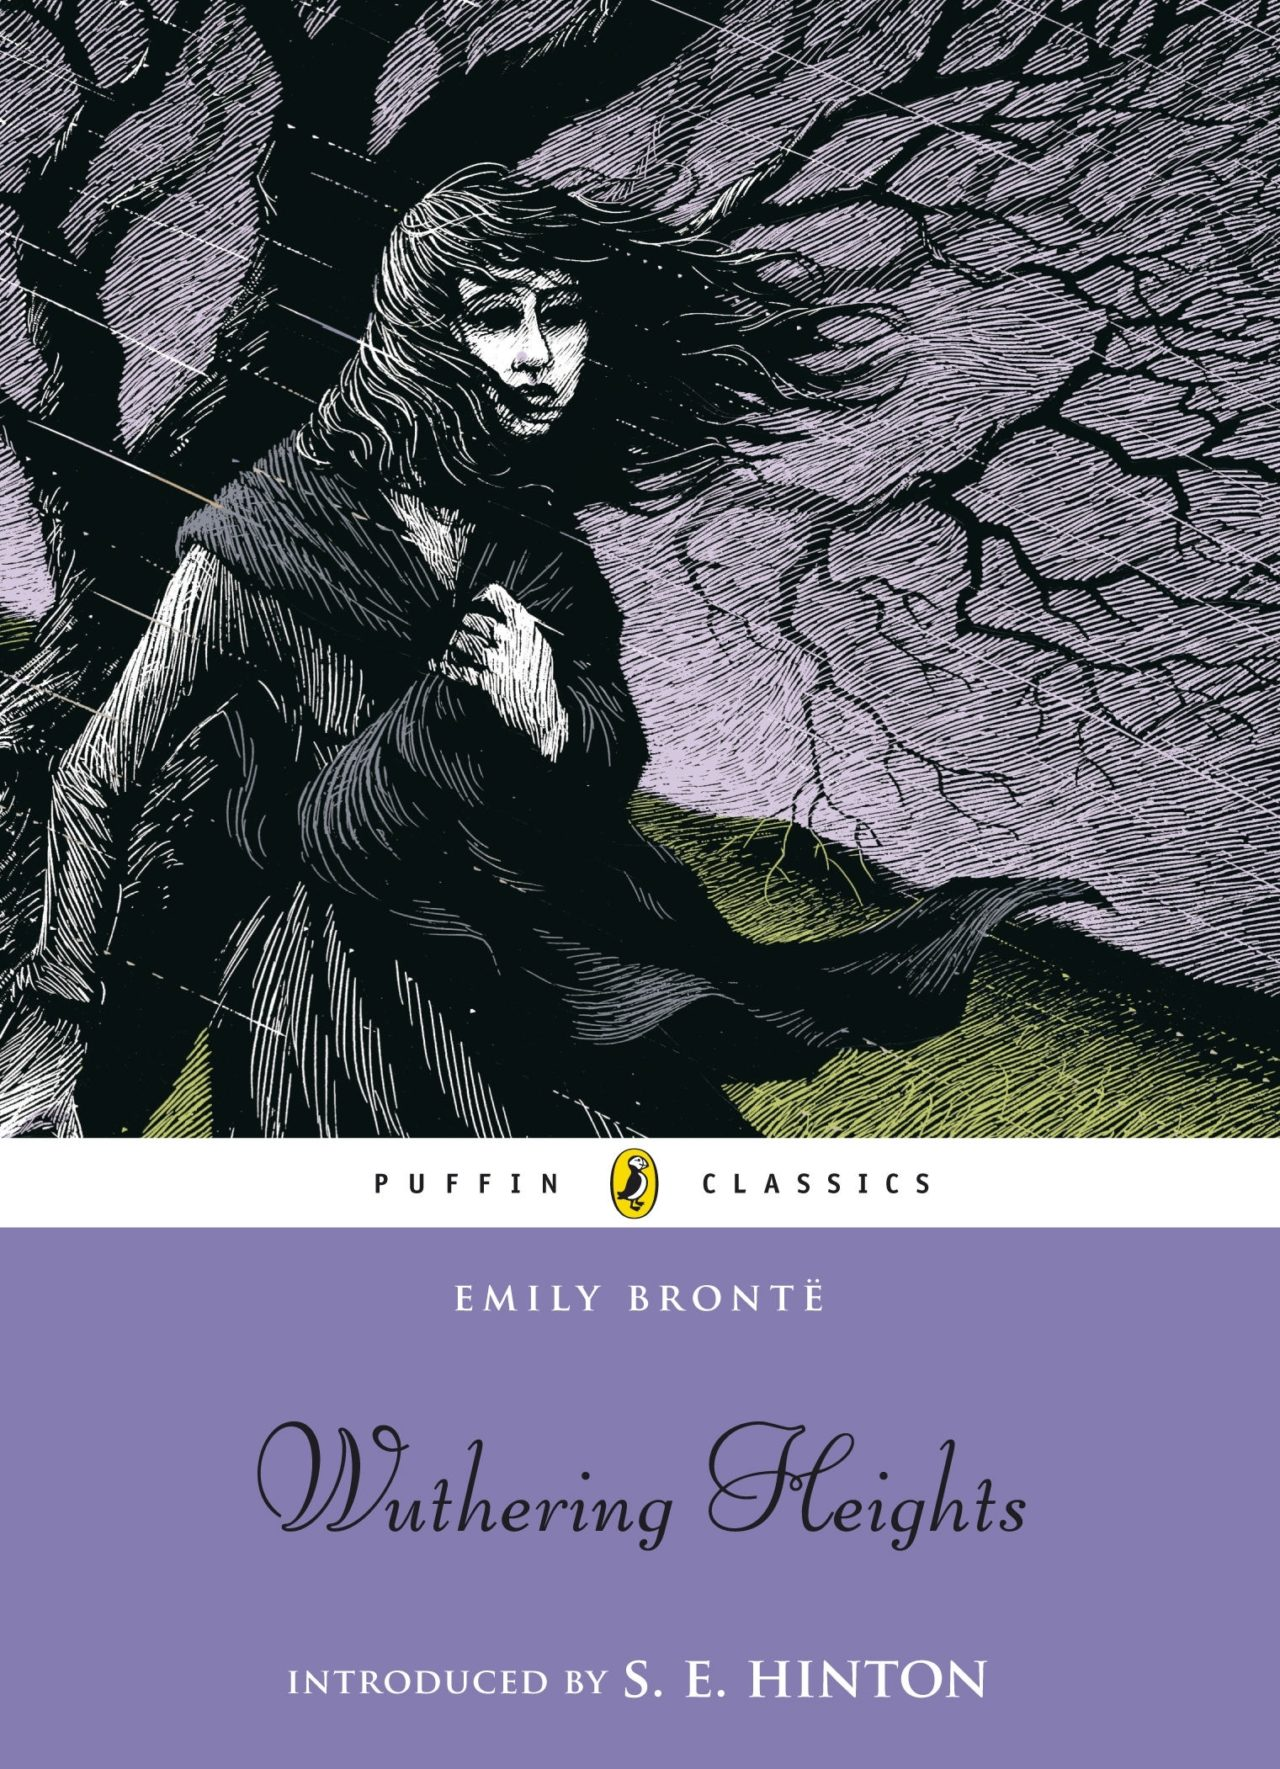 a summary of wuthering heights a novel by charlotte bronte A single page synopsis of the story of wuthering heights including a single paragraph summary a brief summary many people, generally those who have never read the book, consider wuthering heights to be a straightforward, if intense, love story — romeo and juliet on the yorkshire moors.